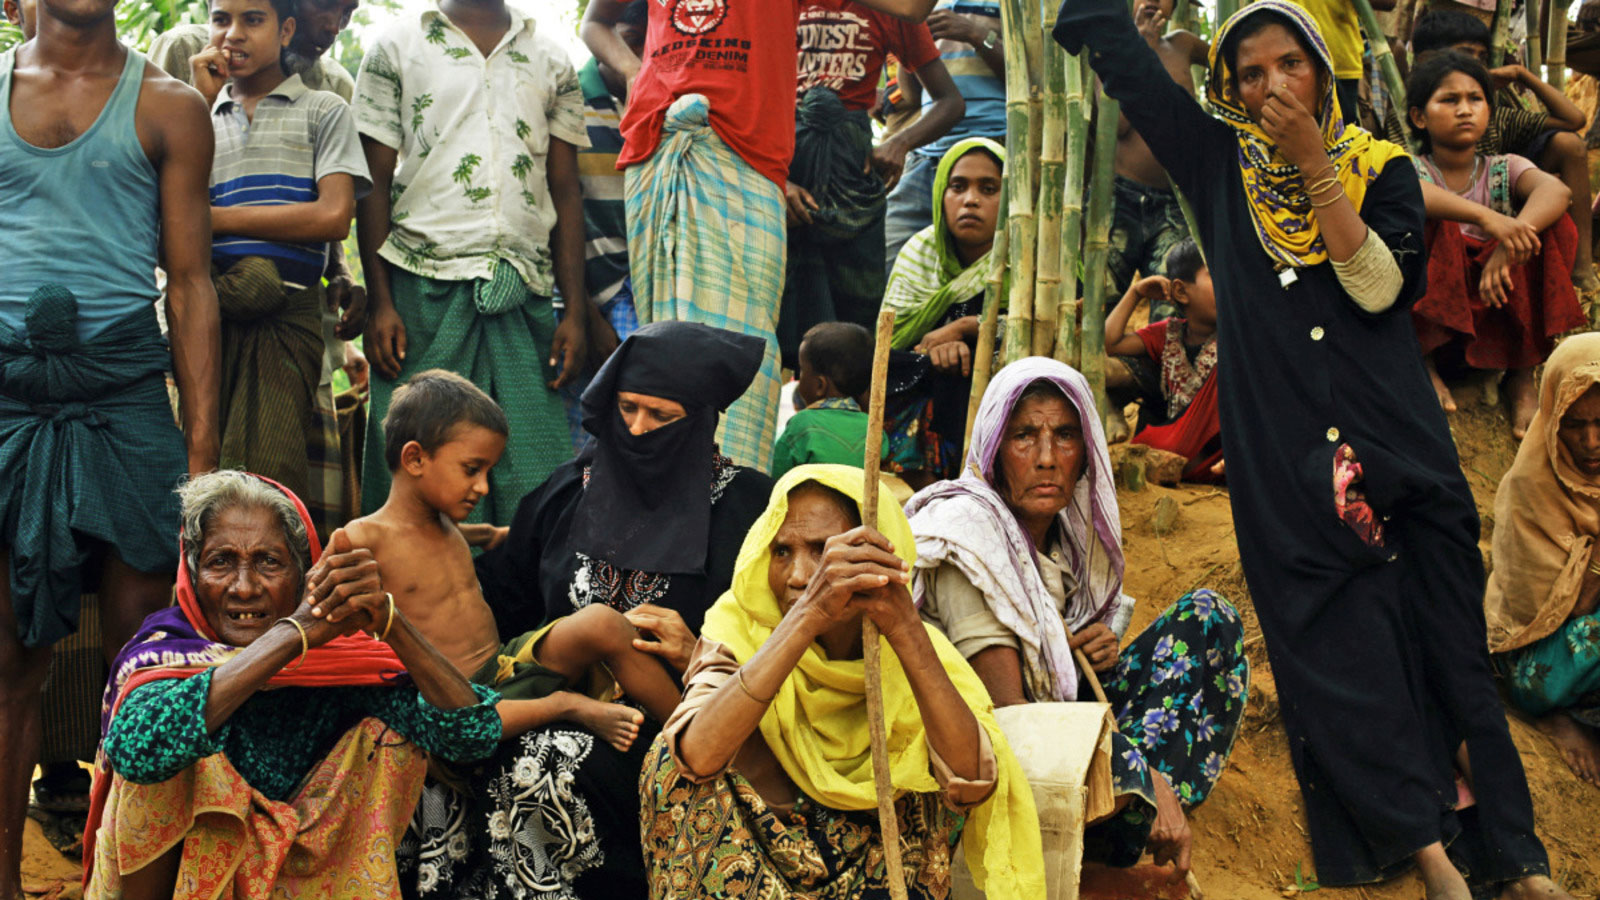 c_MA-Islam_HI__Rohingya-women-wait-for-humanitarian-aid-at-a-refugee-camp-in-Bangladesh-where-HI-provides-support-to-vulnerable-individuals-and-people-with-disabilities.jpg